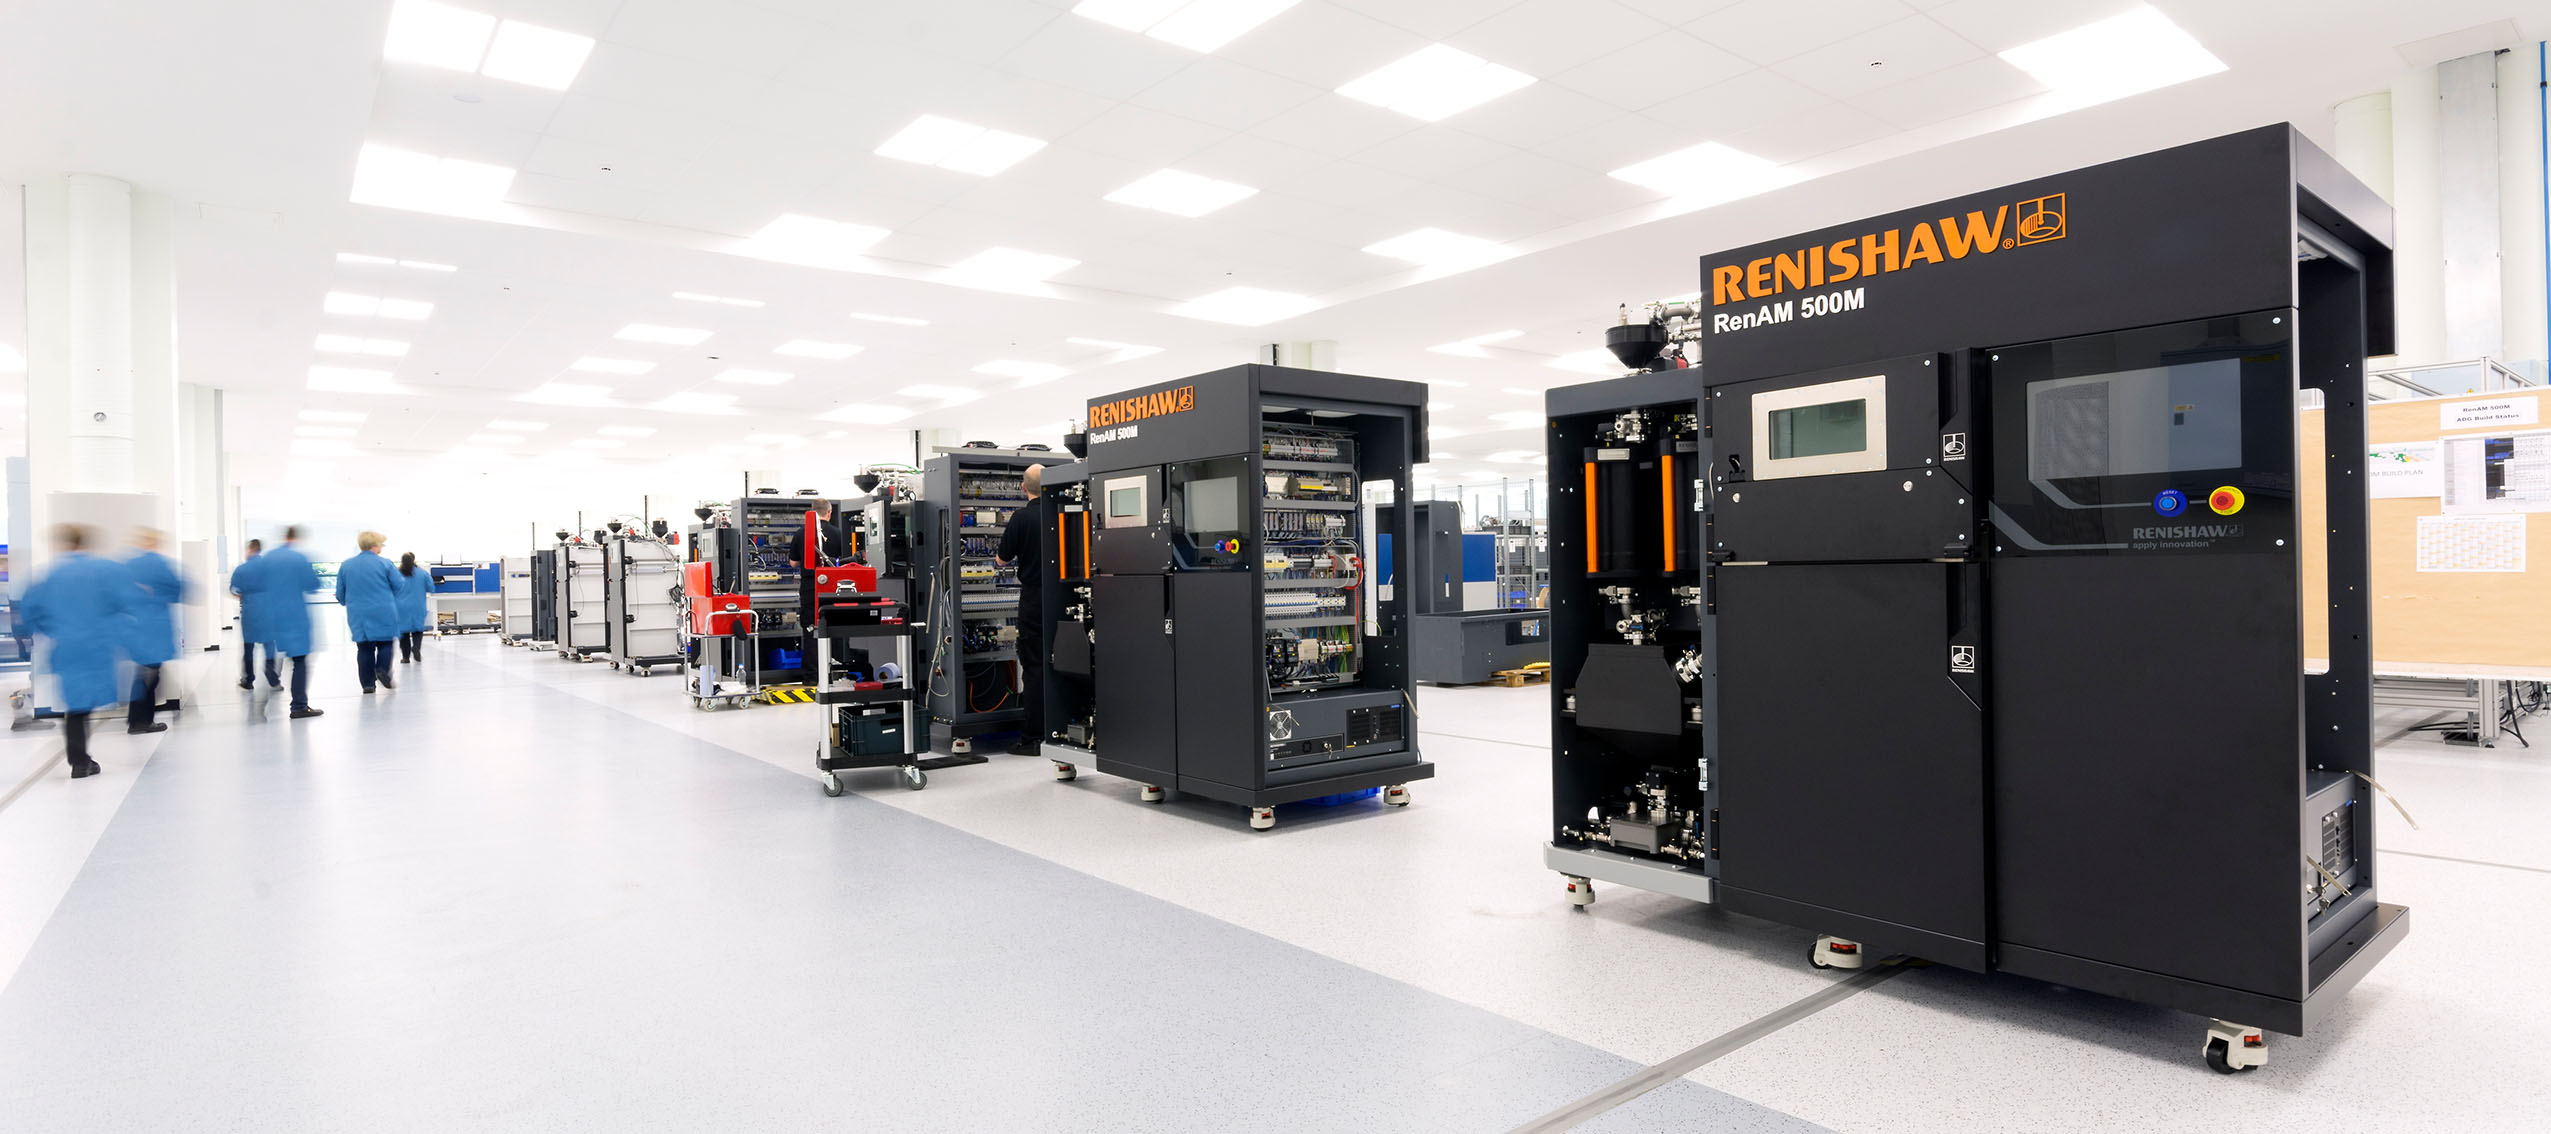 Renishaw will bring the latest innovations in metal additive manufacturing to Addit3D 2017